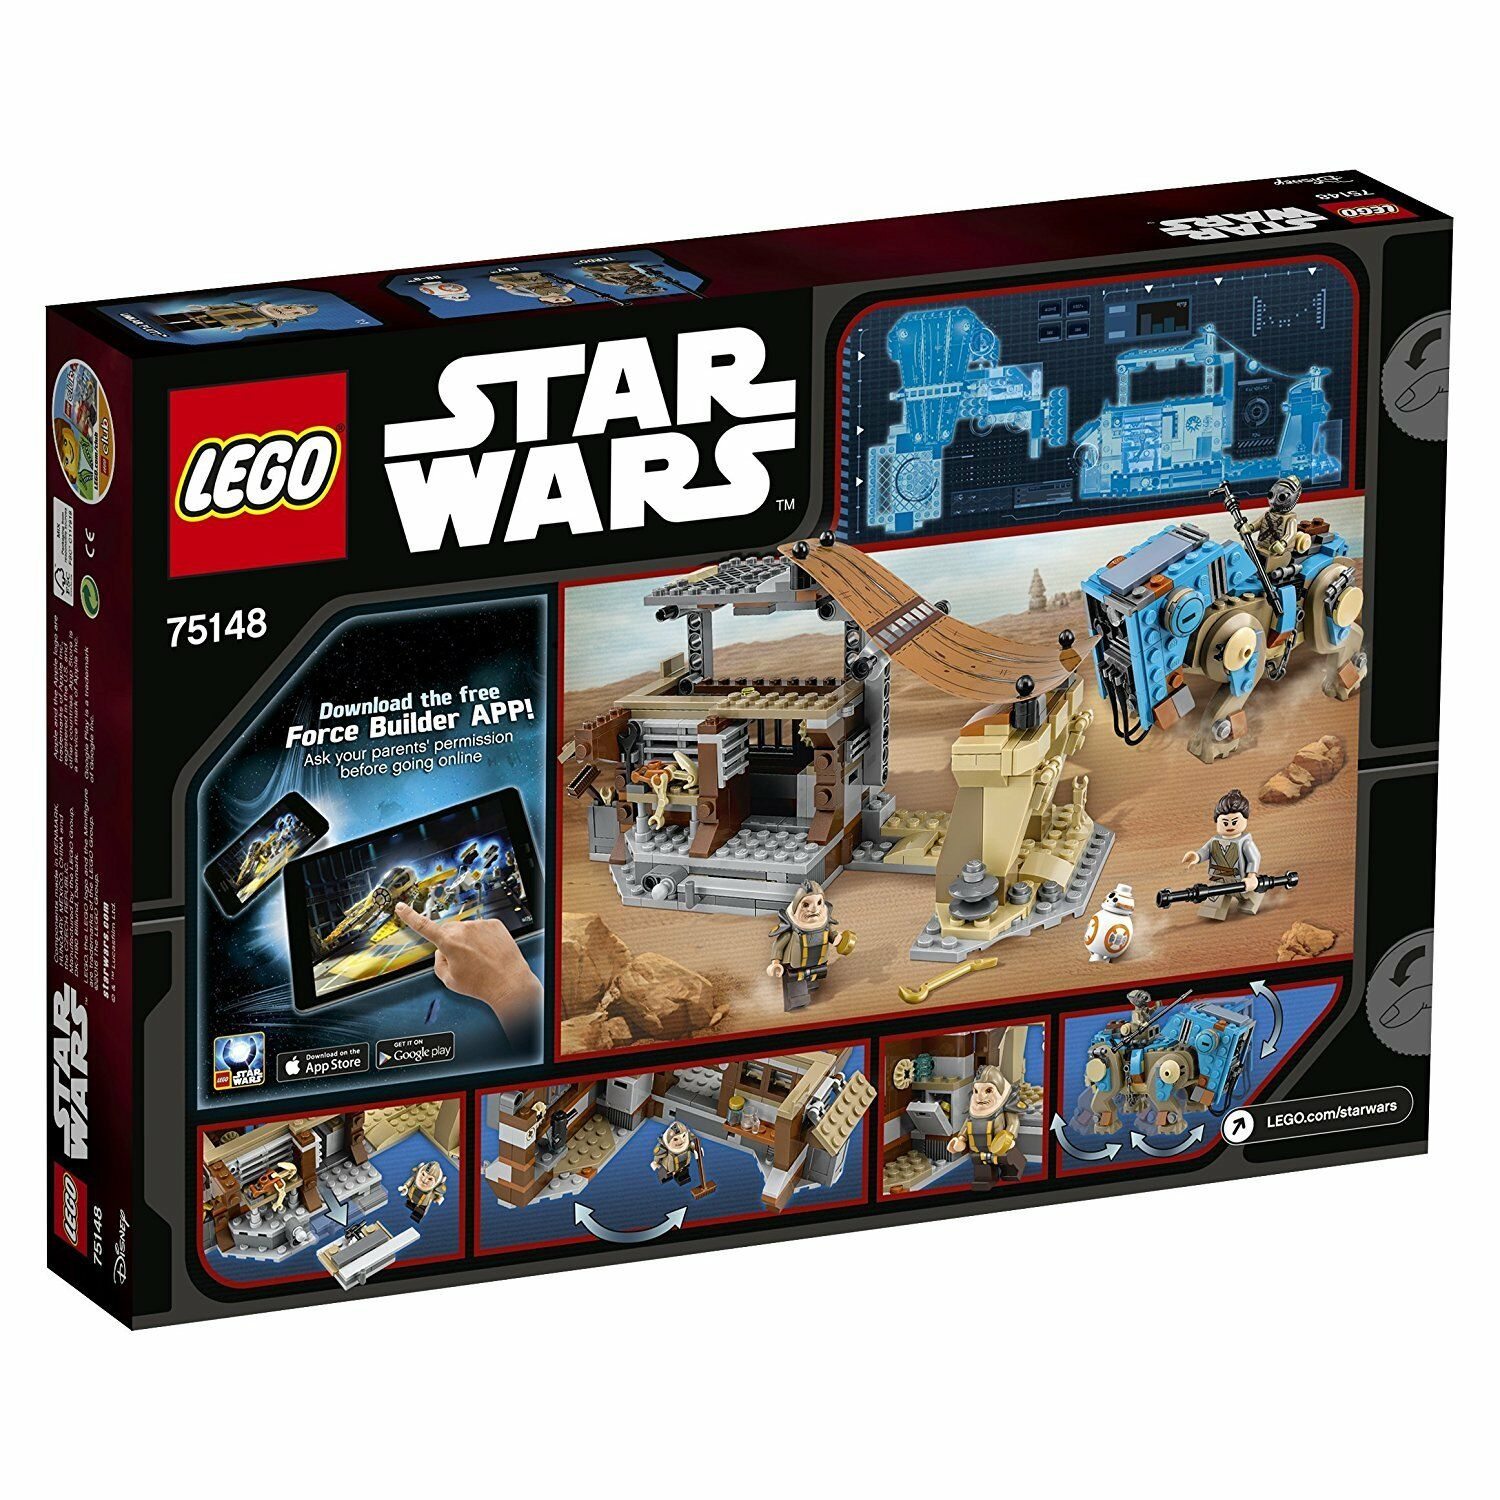 LEGO® Star Wars 75148 Encounter on Jakku - - - neu ovp 831876